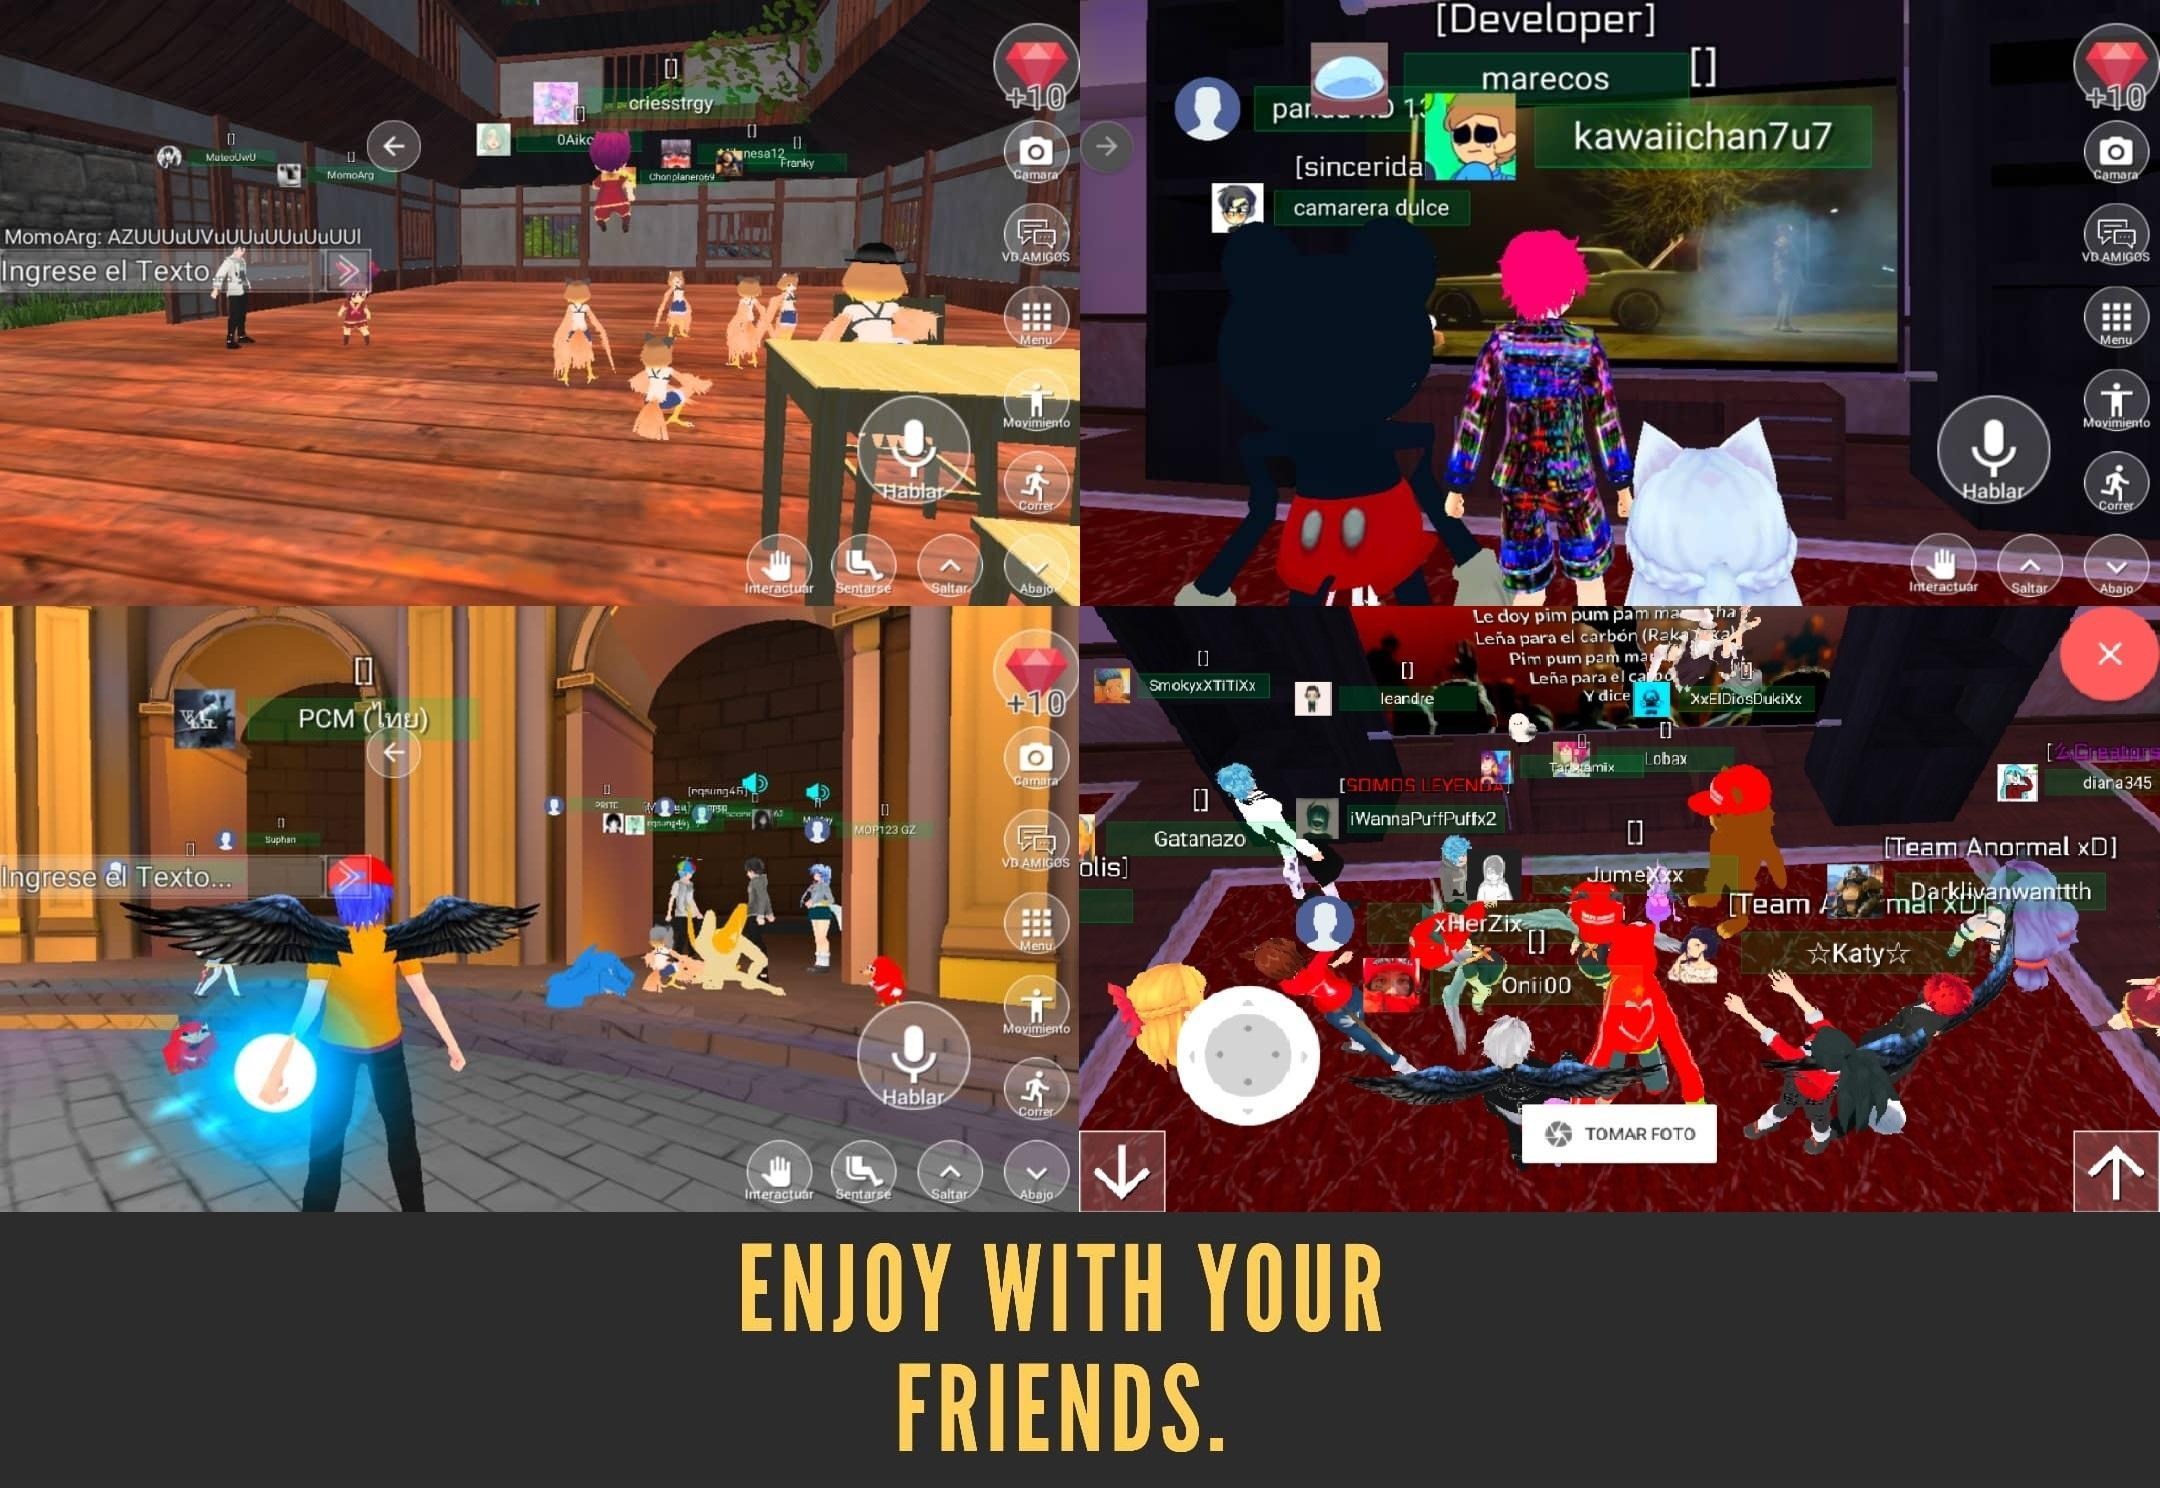 Virtual Droid 2 for Android - APK Download